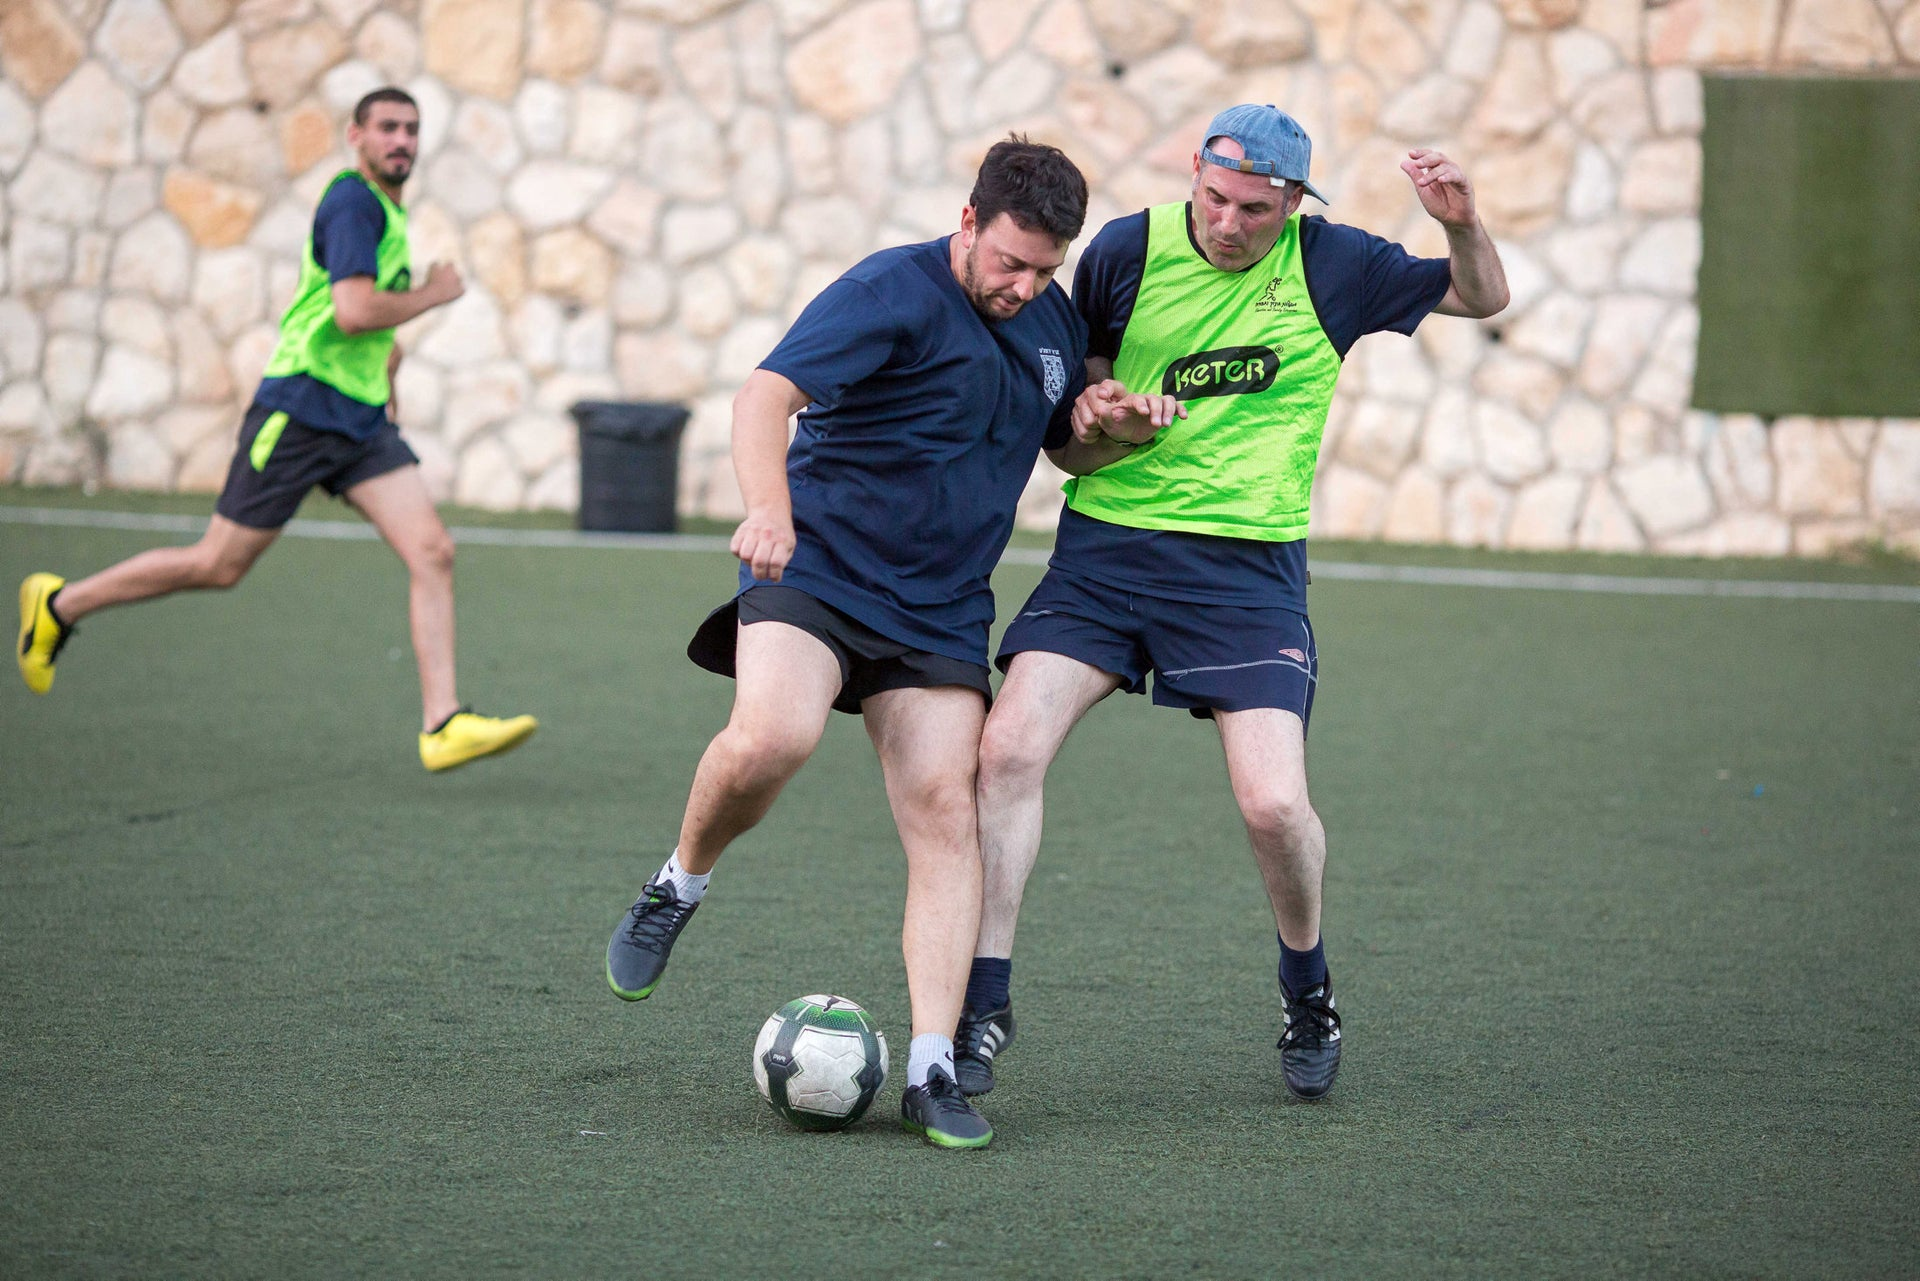 Practice session of the homeless soccer team in Jerusalem, July 2018